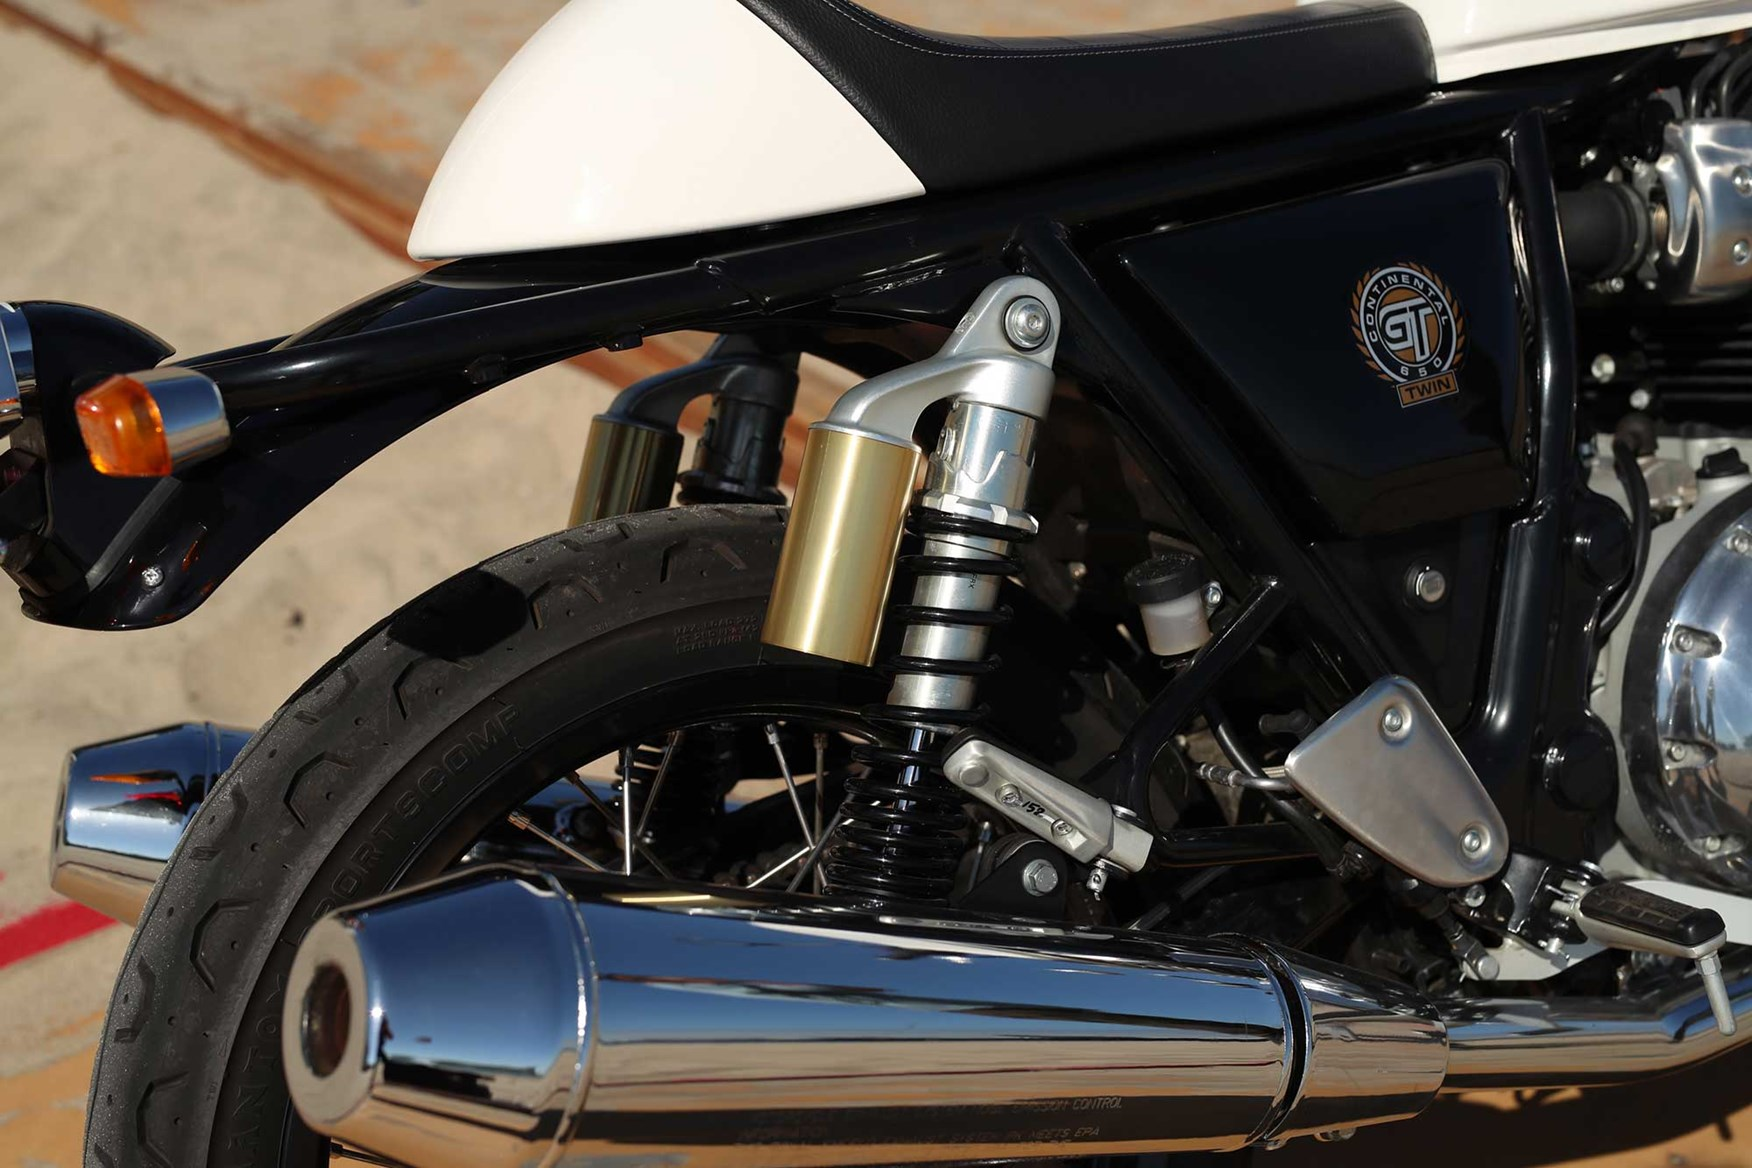 ENFIELD CONTINENTAL GT (2018-on) Review, Specs & Prices | MCN